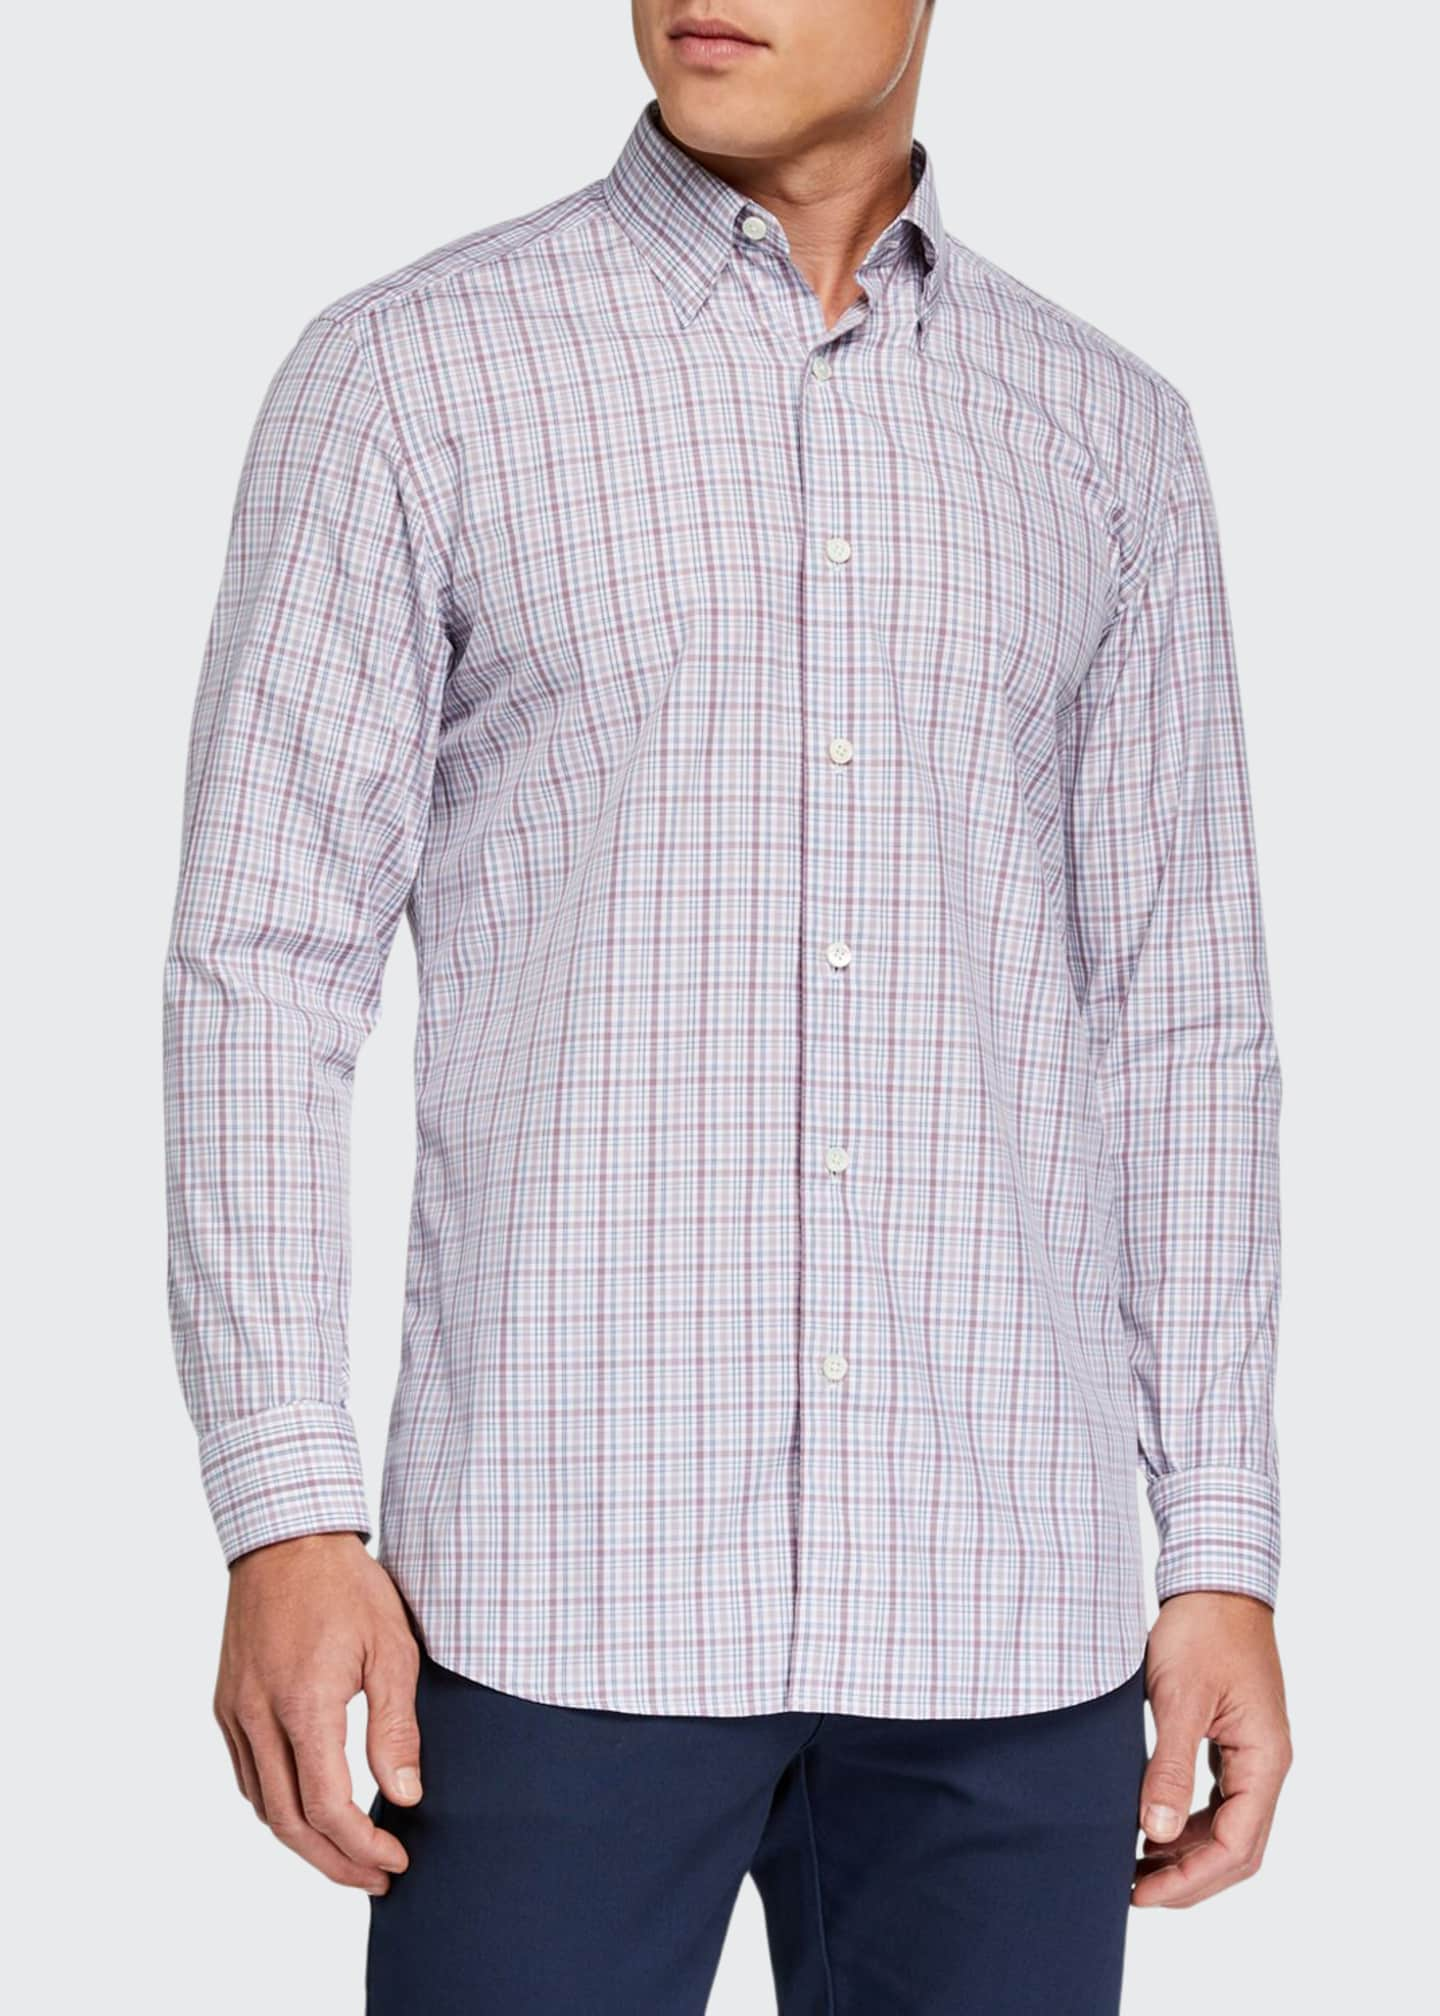 Ermenegildo Zegna Men's Cento Quaranta Plaid Sport Shirt,